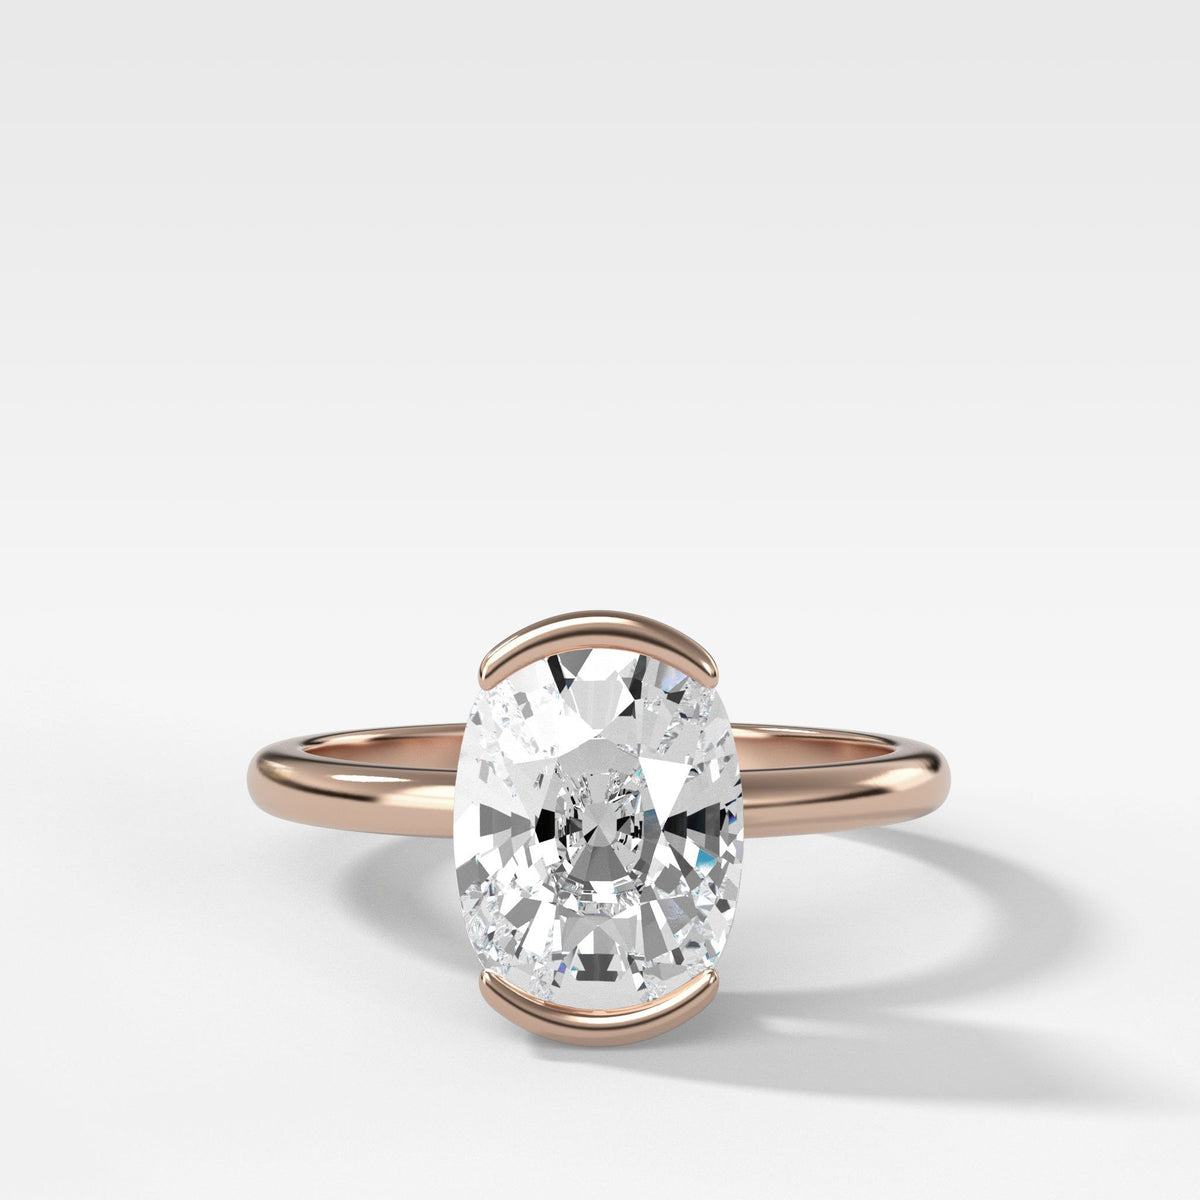 North South Half Bezel Solitaire Engagement Ring With Elongated Cushion Cut in Rose Gold by Good Stone